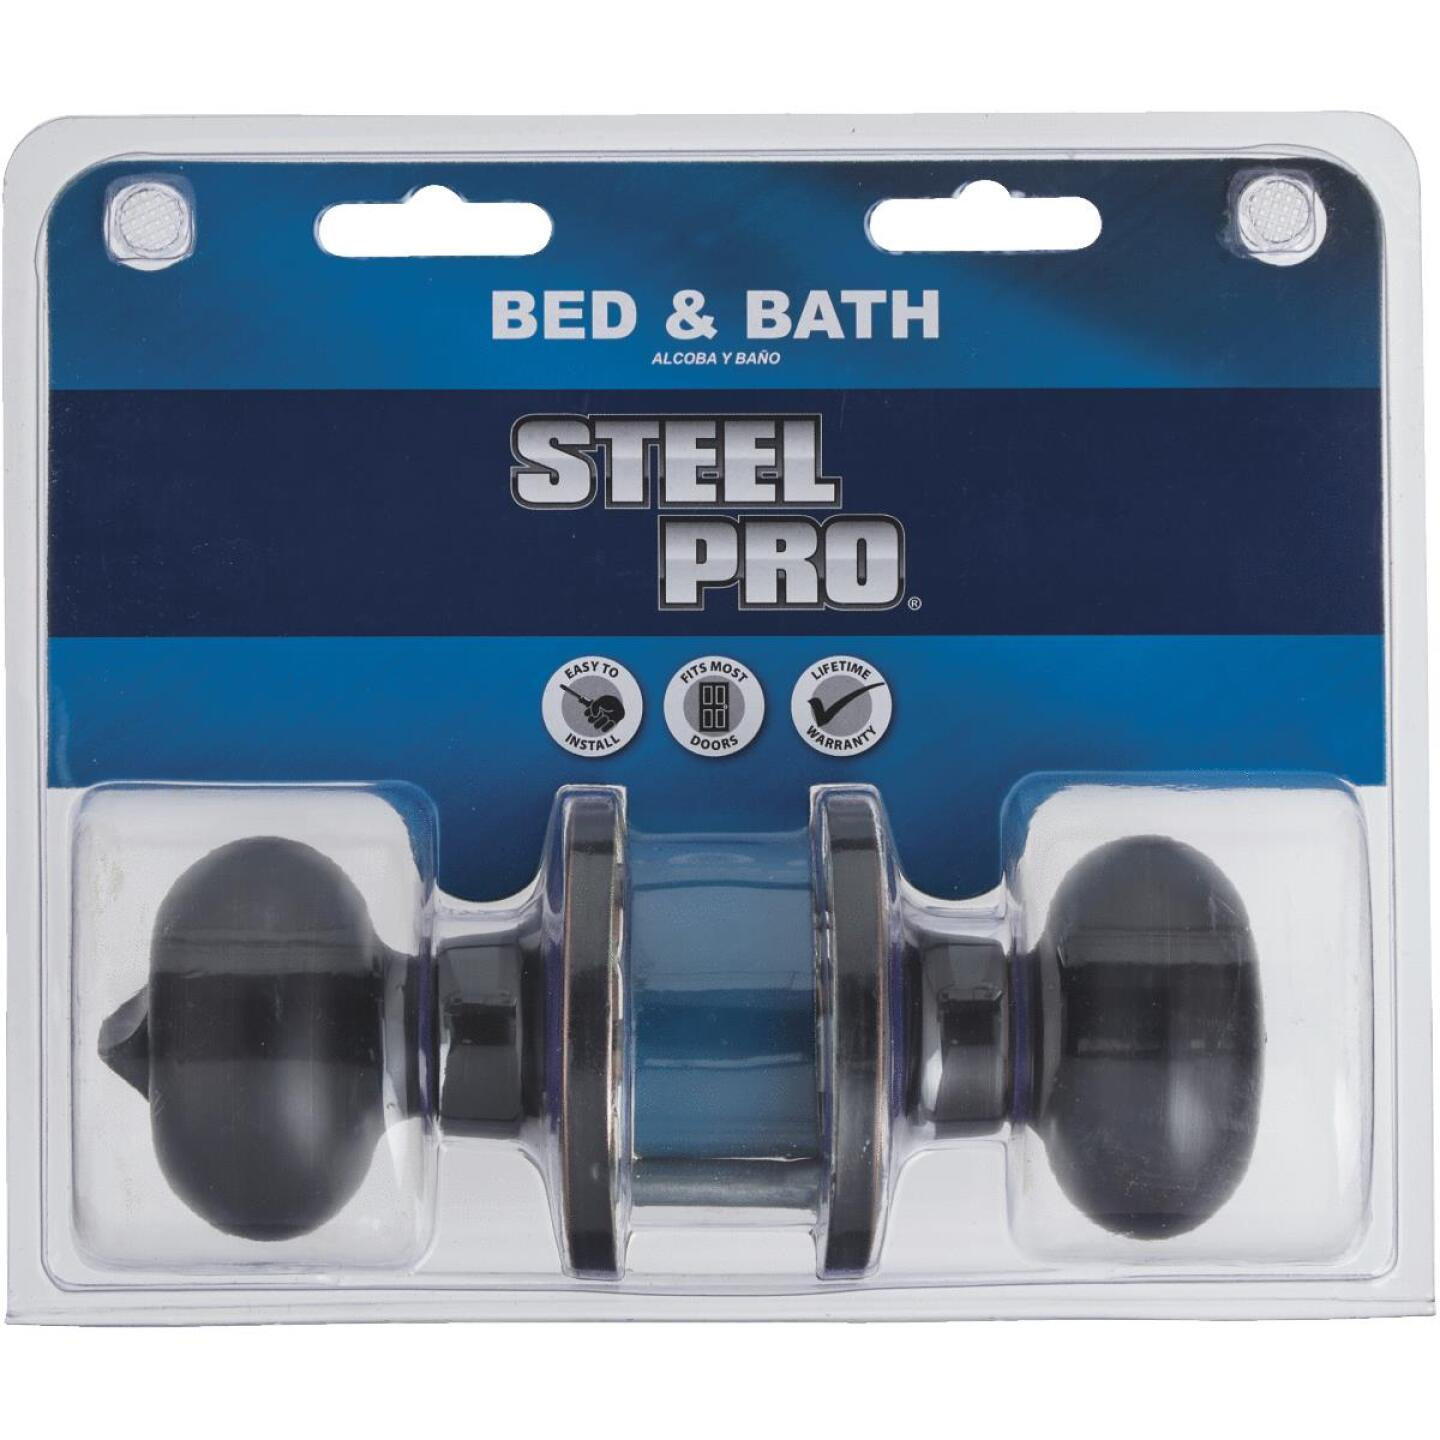 Steel Pro Oil Rubbed Bronze Bed & Bath Door Knob Image 3